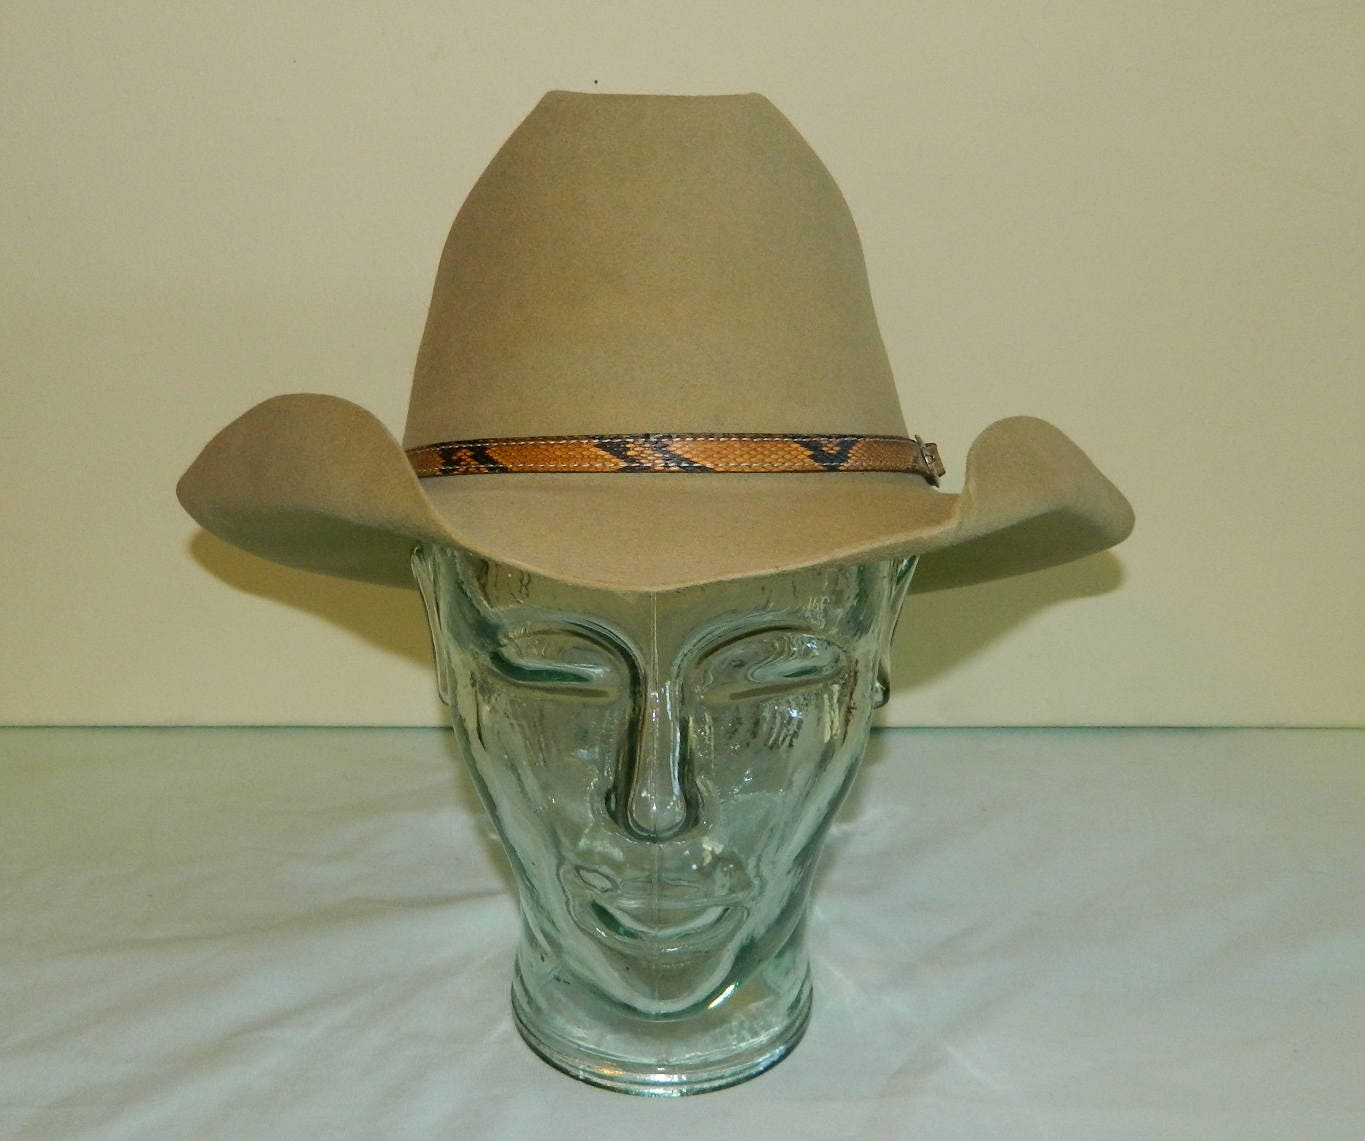 15af146bc41a2 7 50s Tan 3X Beaver Stetson Last Drop Embroidered Liner